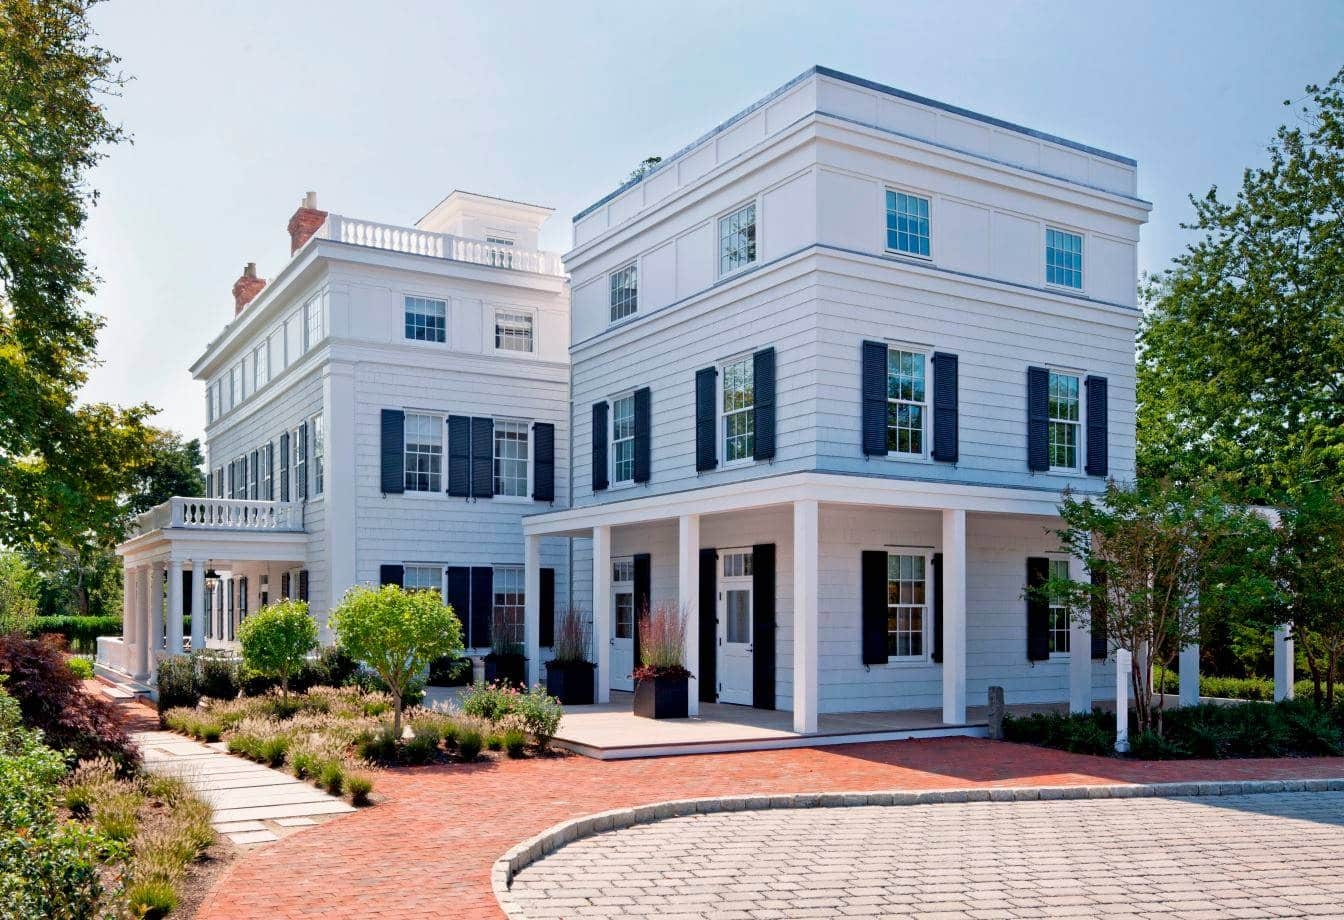 topping rose house is one of my favorite hamptons destinations - top 10 hamptons getaway essentials - darci hether new york